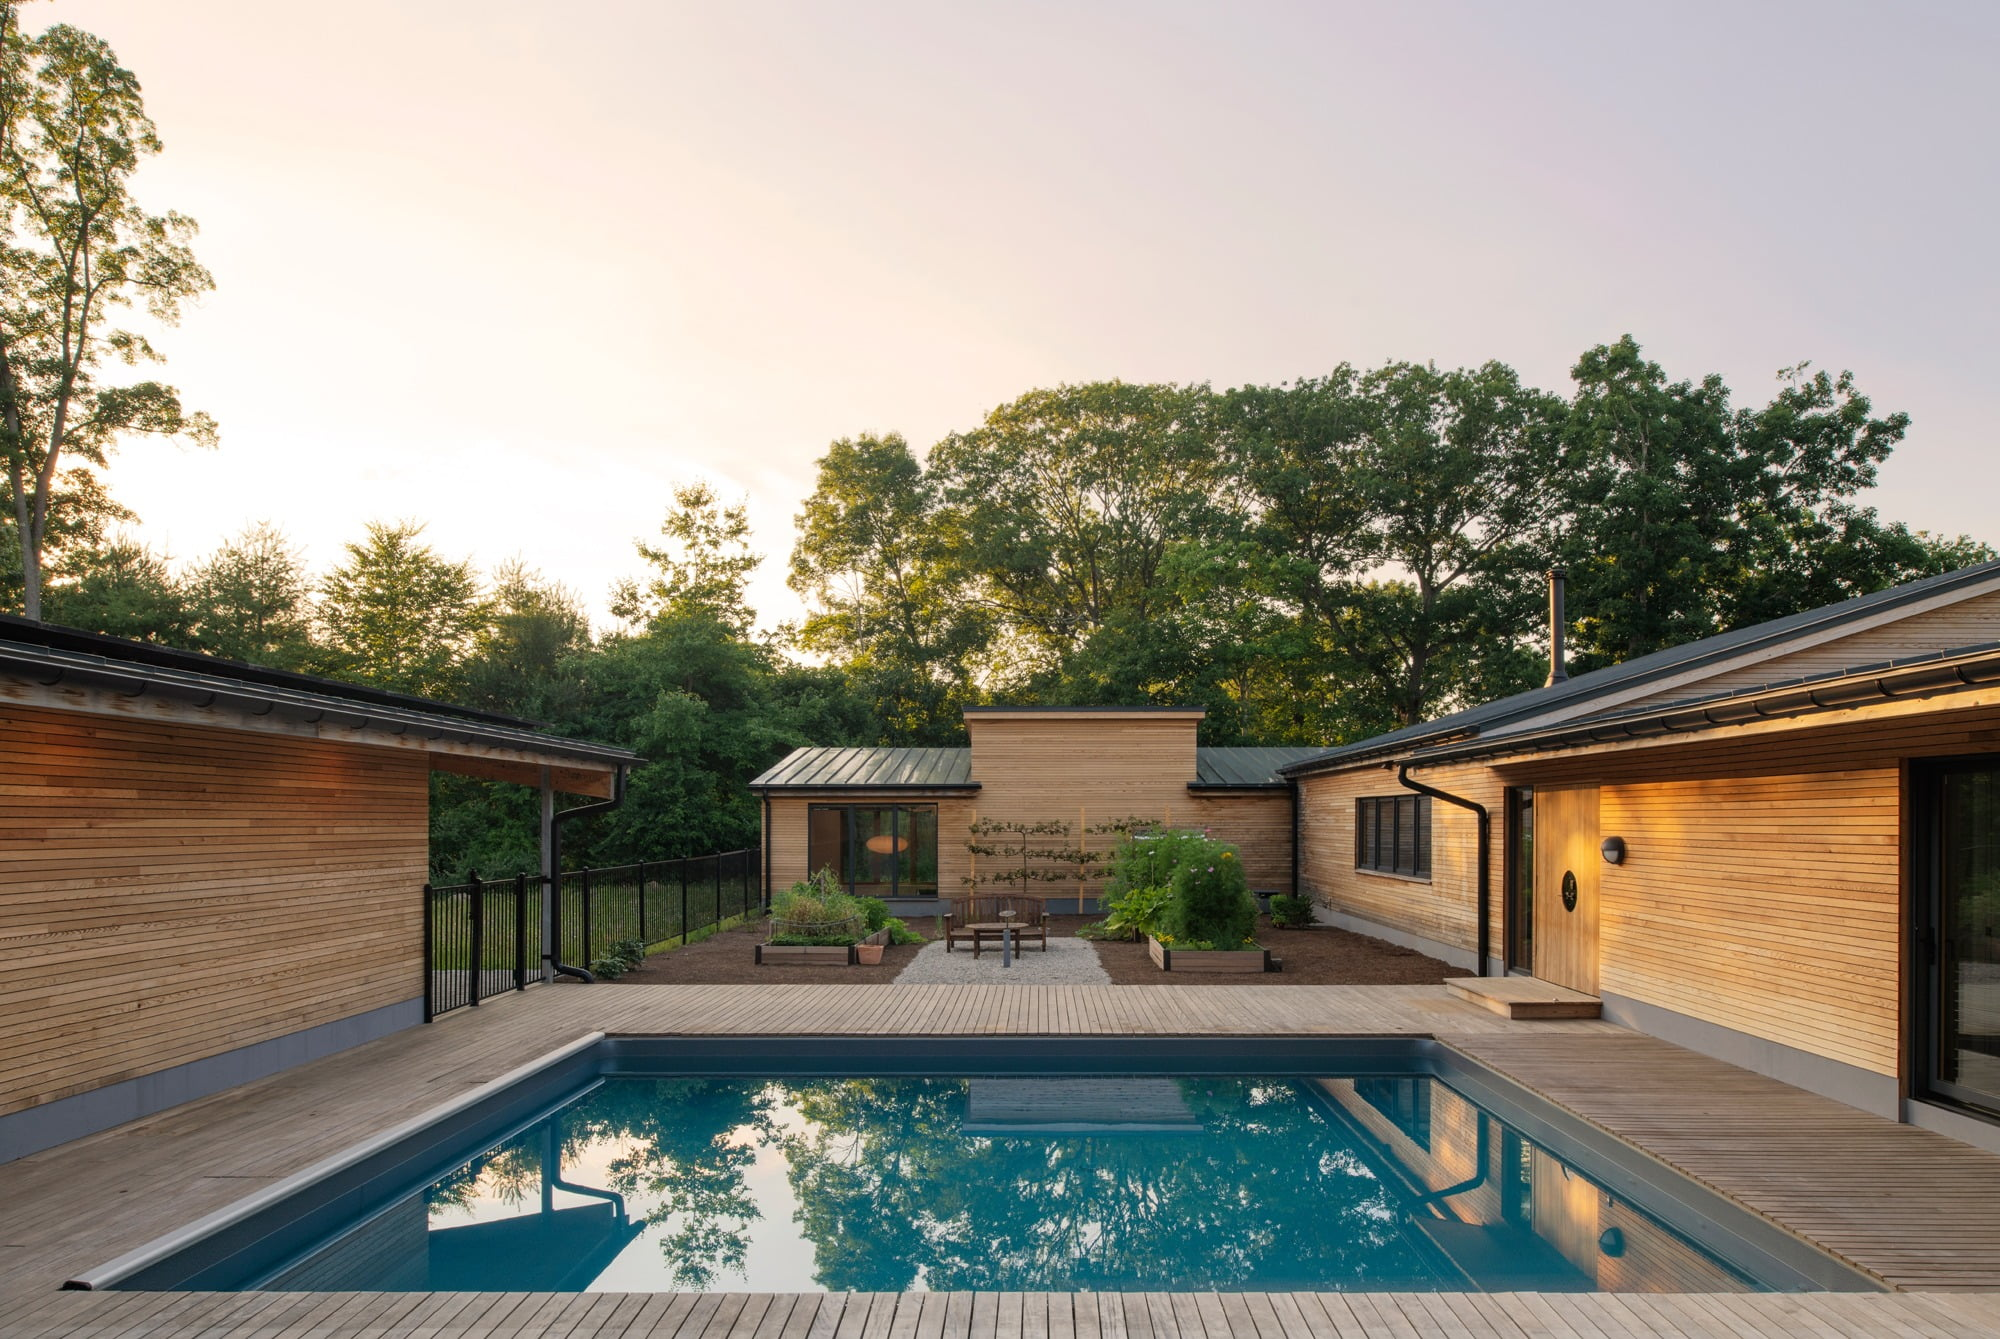 Swimming pool, Interior design, Water, Sky, Plant, Property, Building, Tree, Shade, Grass